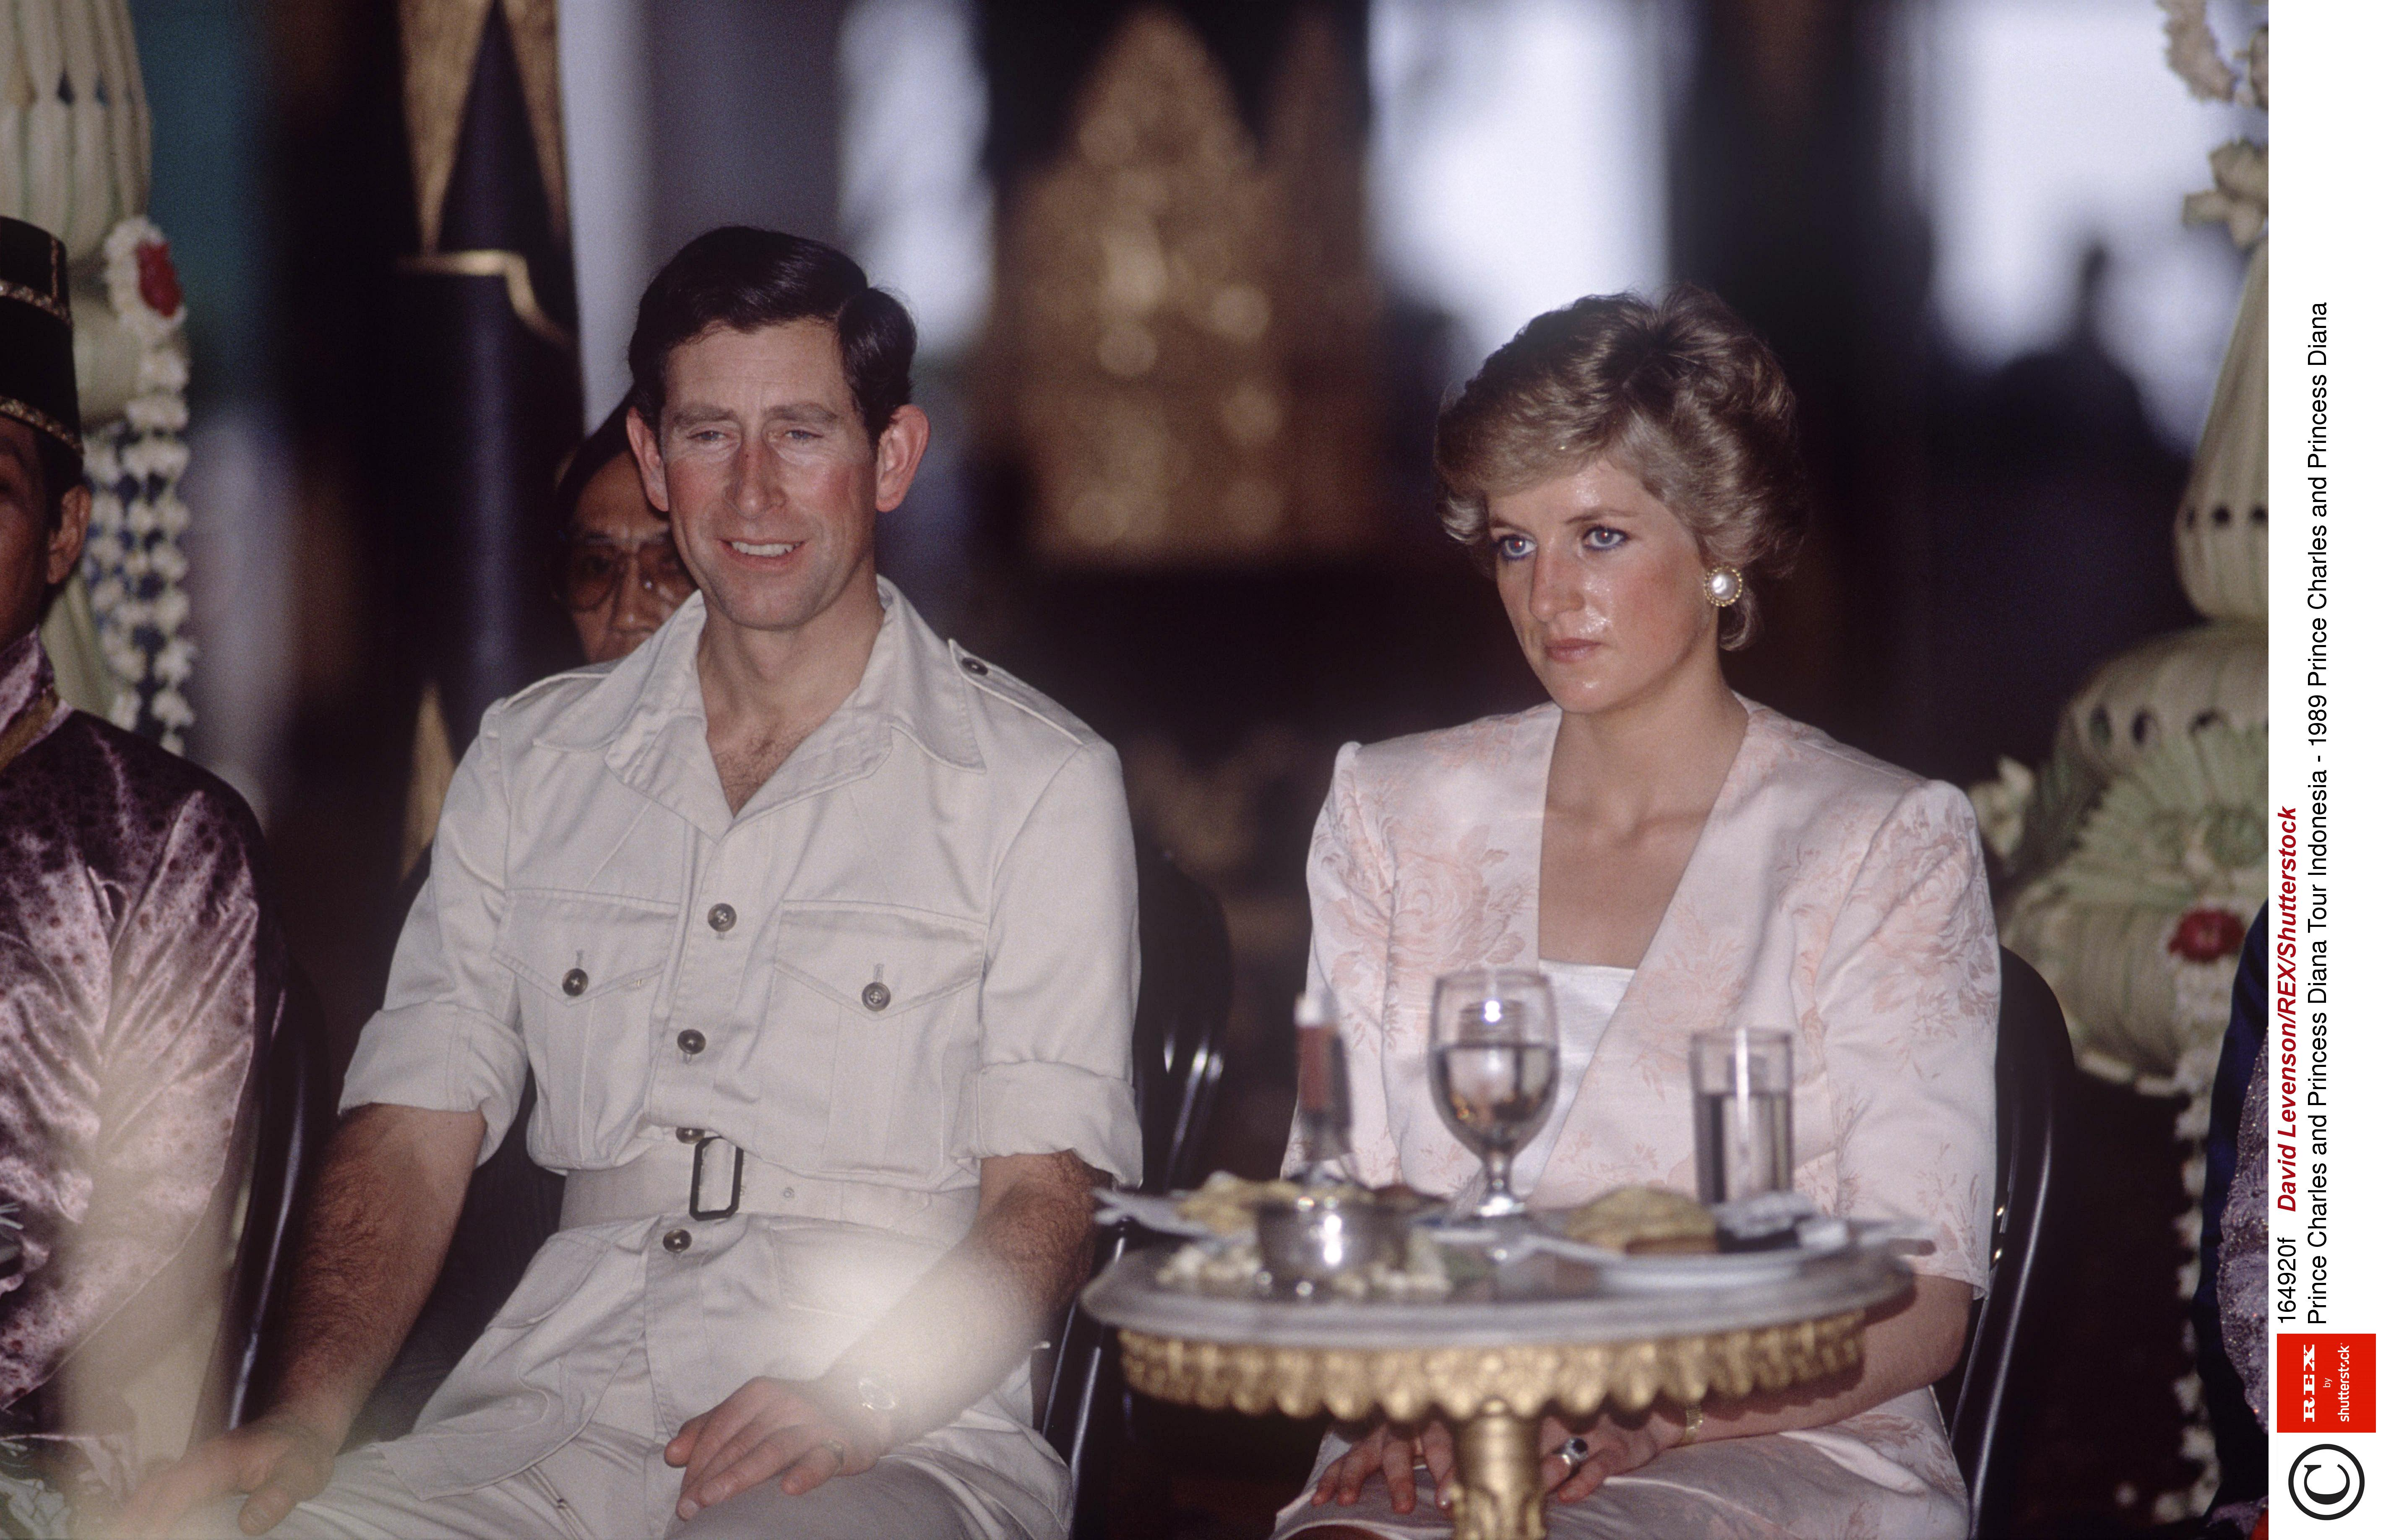 Princess Diana Confronted Camilla At A Party Over Her Affair With Prince Charles And All Hell Broke Loose